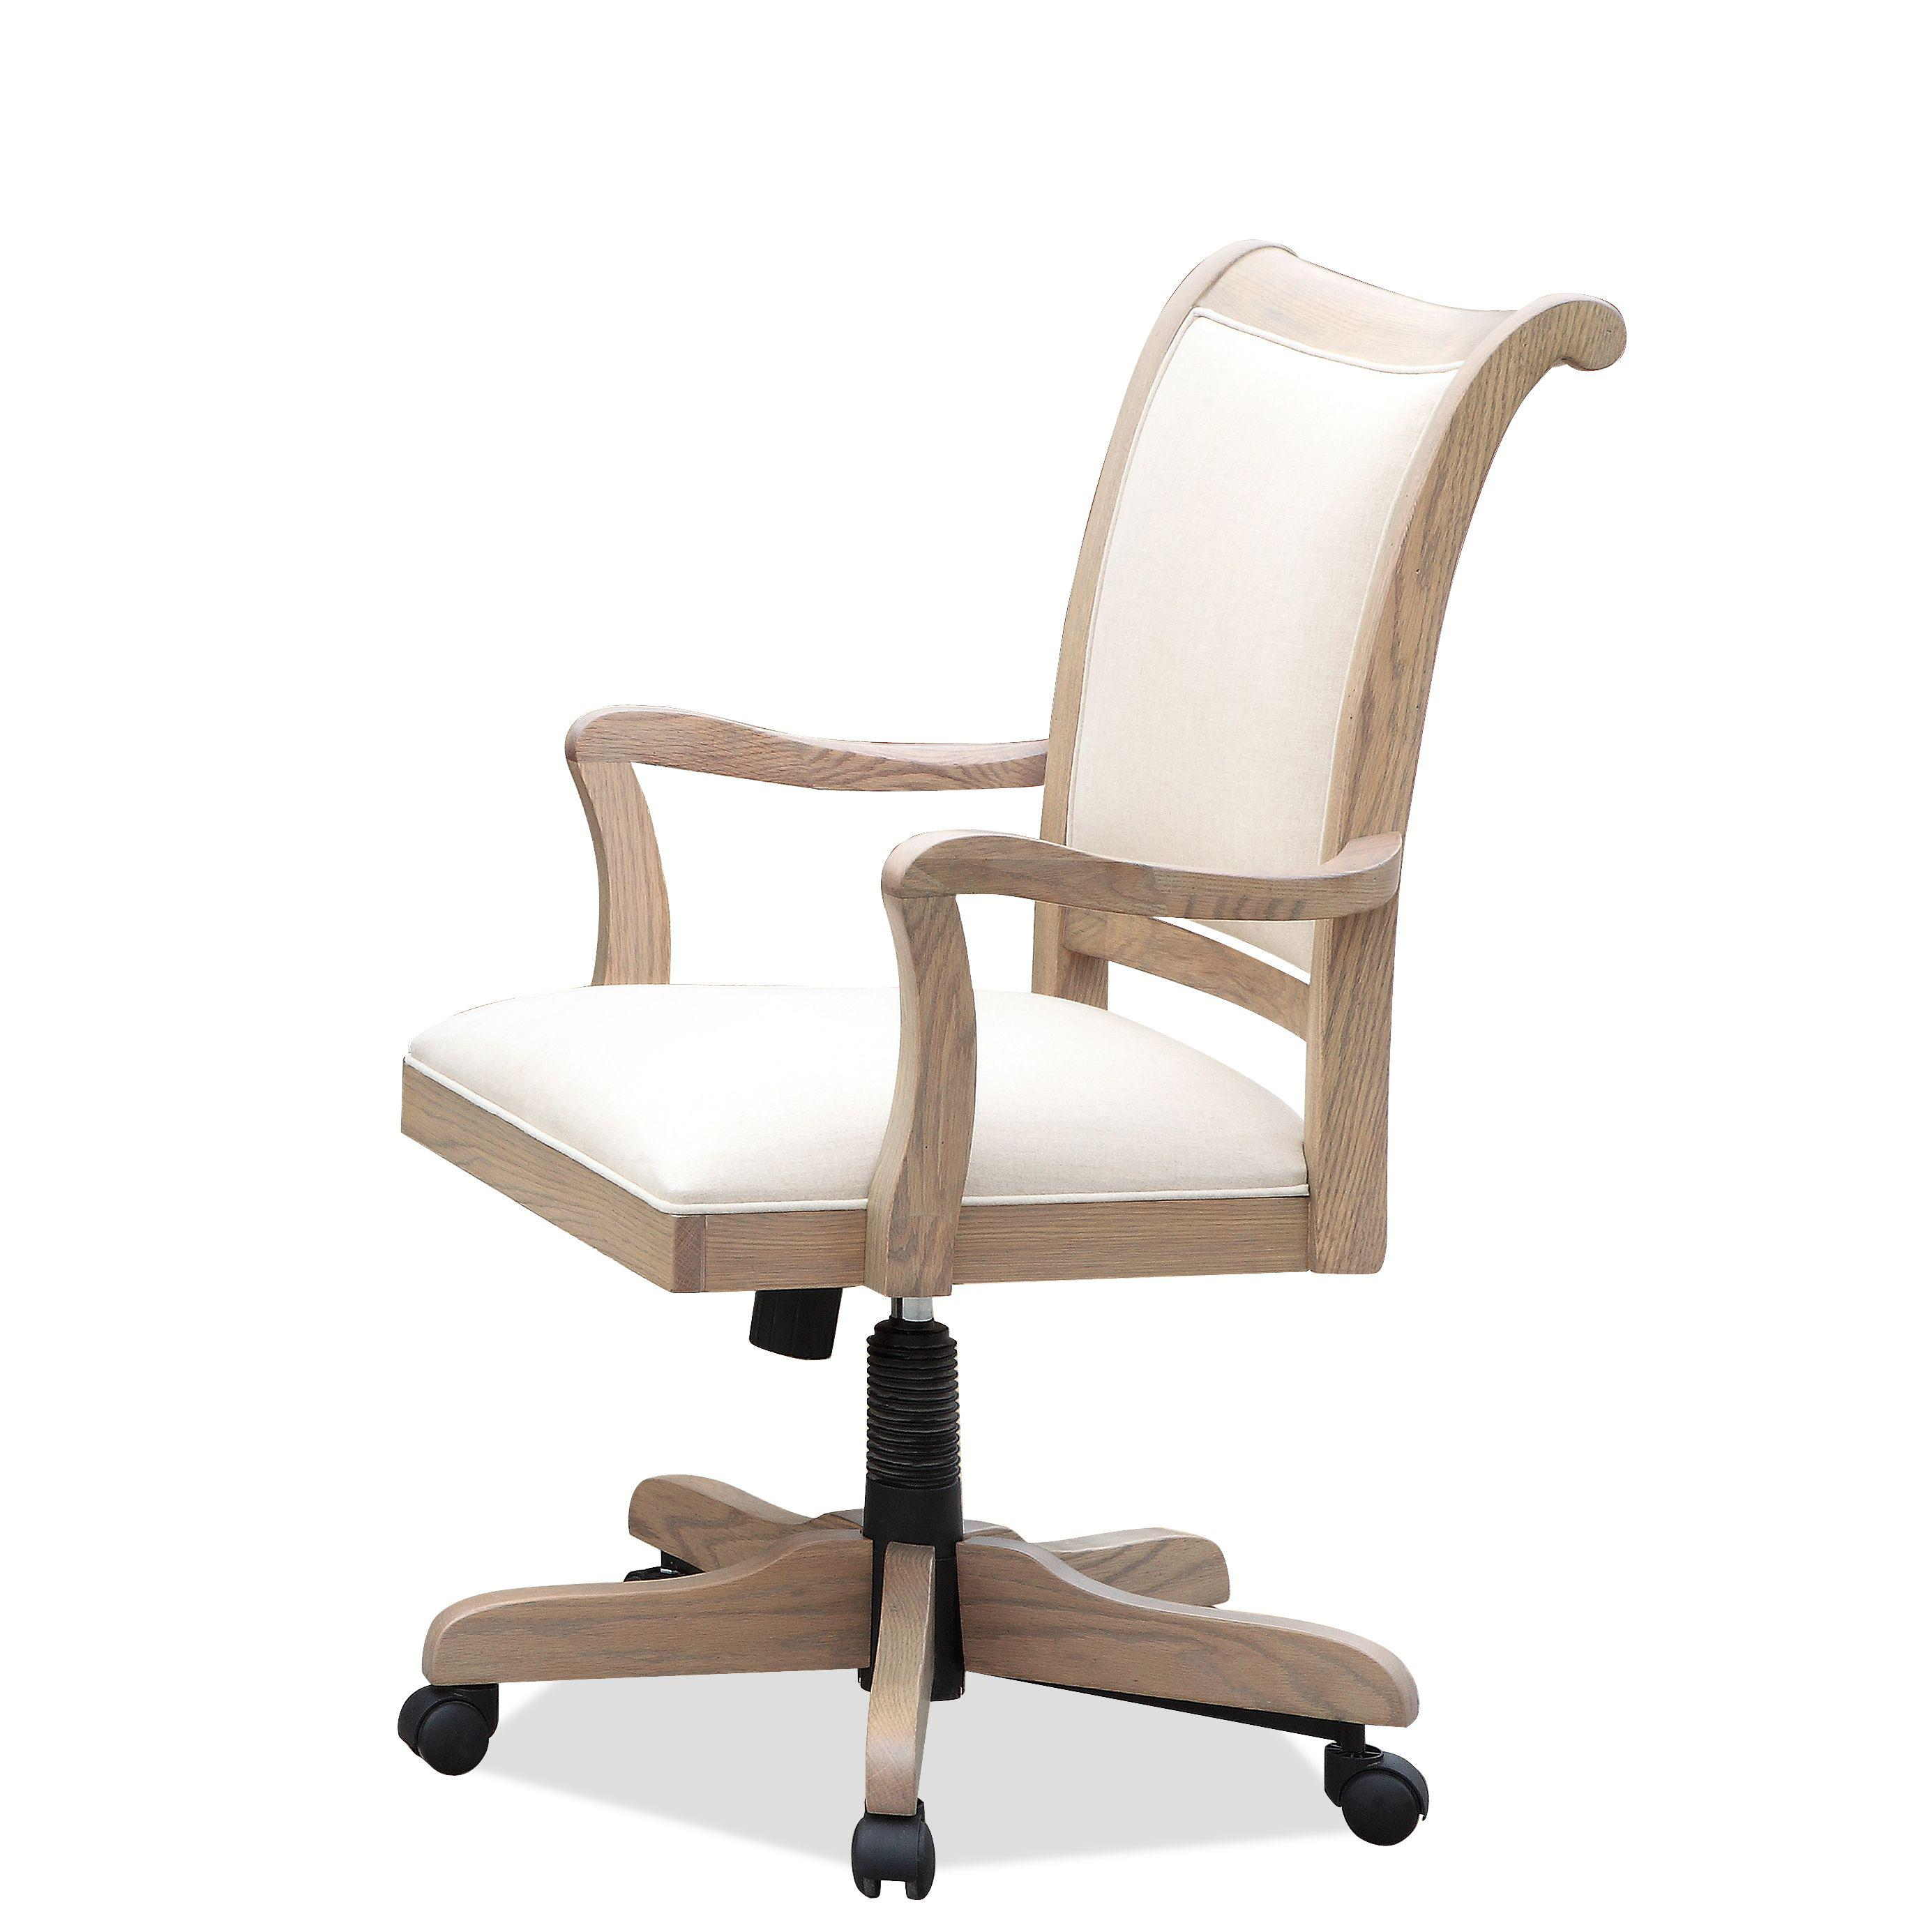 Adjustable Desk Chair Without Wheels Adjustable Desk Chair Without Wheels Shapeyourminds